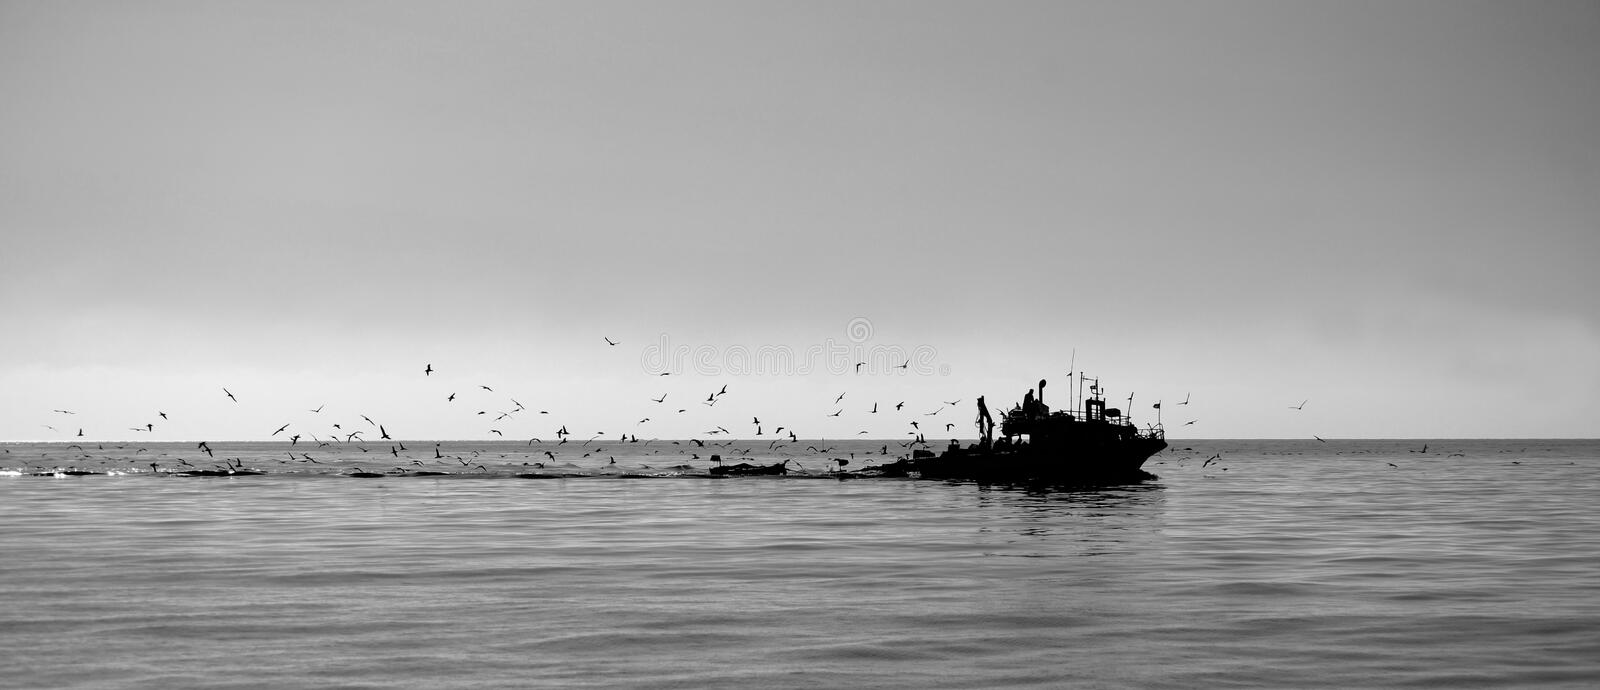 Tunisian fishing boat. The Tunisian fishing boat returns to its home port, accompanied by a flock of seabirds - the Scopoli`s shearwaters Calonectris diomedea royalty free stock photo